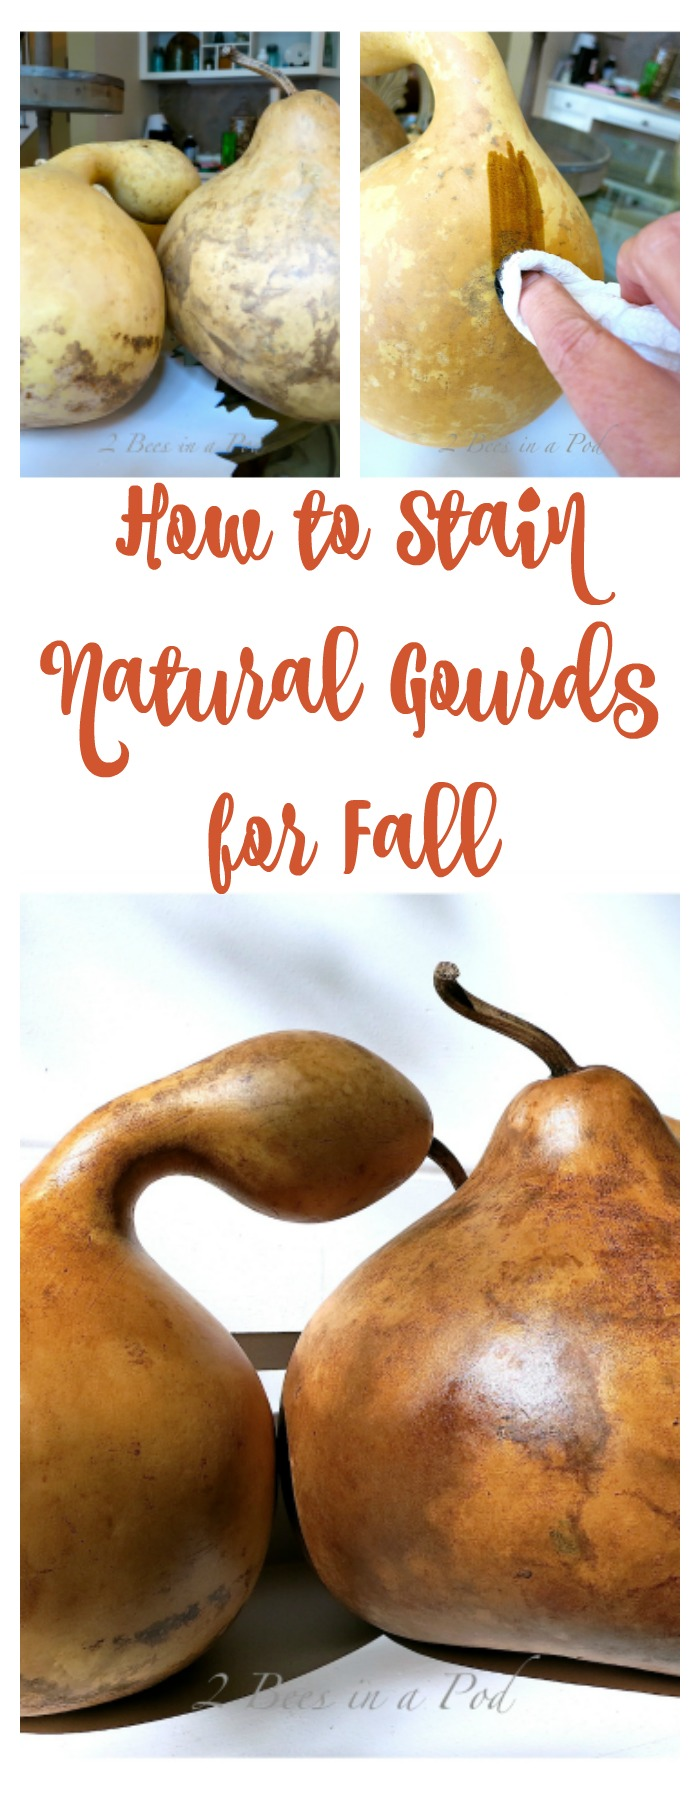 Staining natural gourds can be risky, but the risk was worth the reward. The natural gourds have a beautiful sheen and are perfect for Fall.